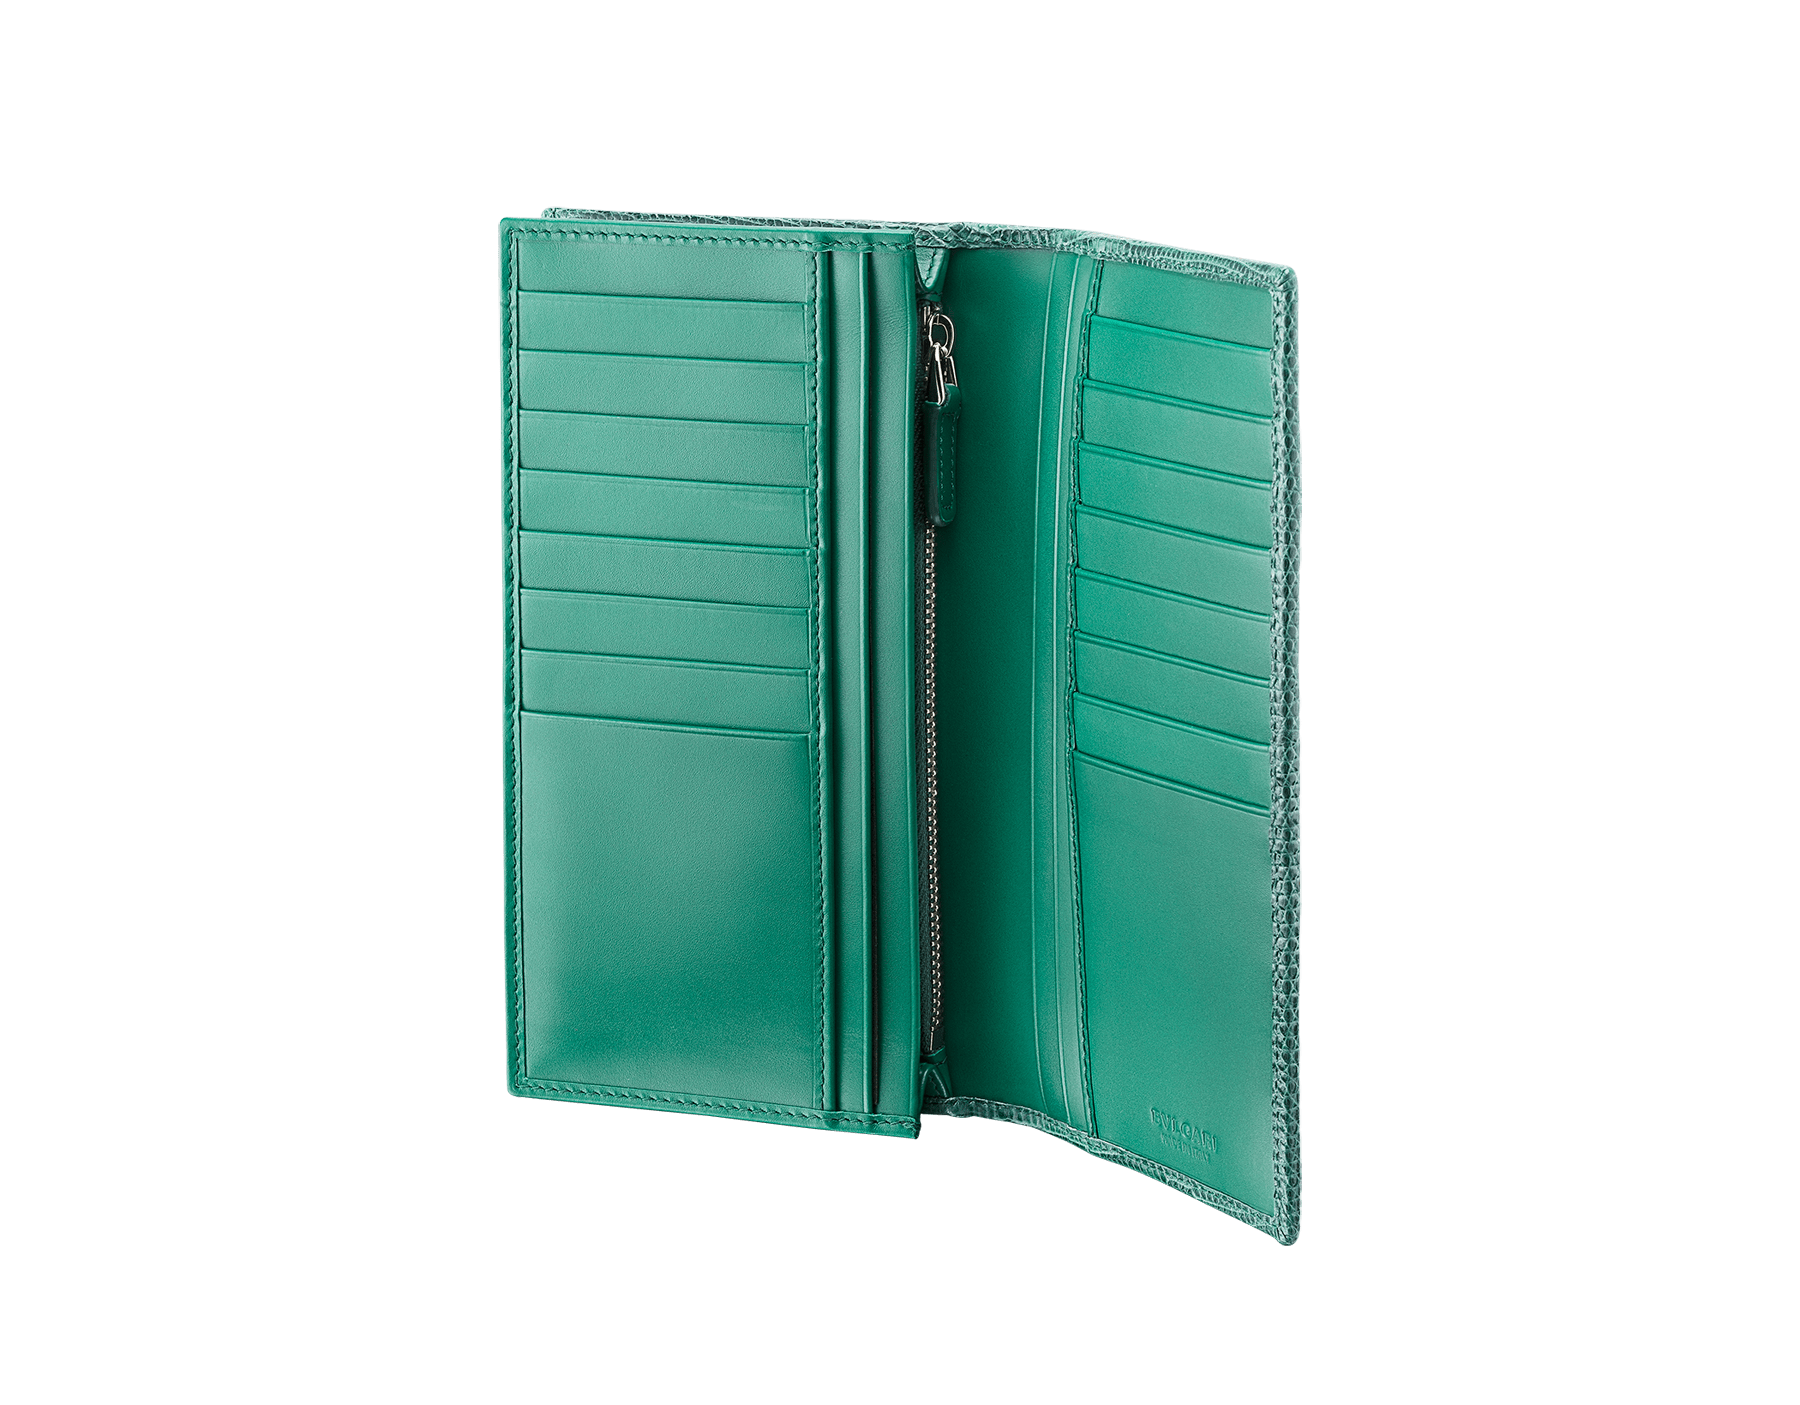 BVLGARI BVLGARI wallet for men in forest emerald shiny lizard skin and black nappa lining. Iconic logo décor in palladium plated brass. 289422 image 2